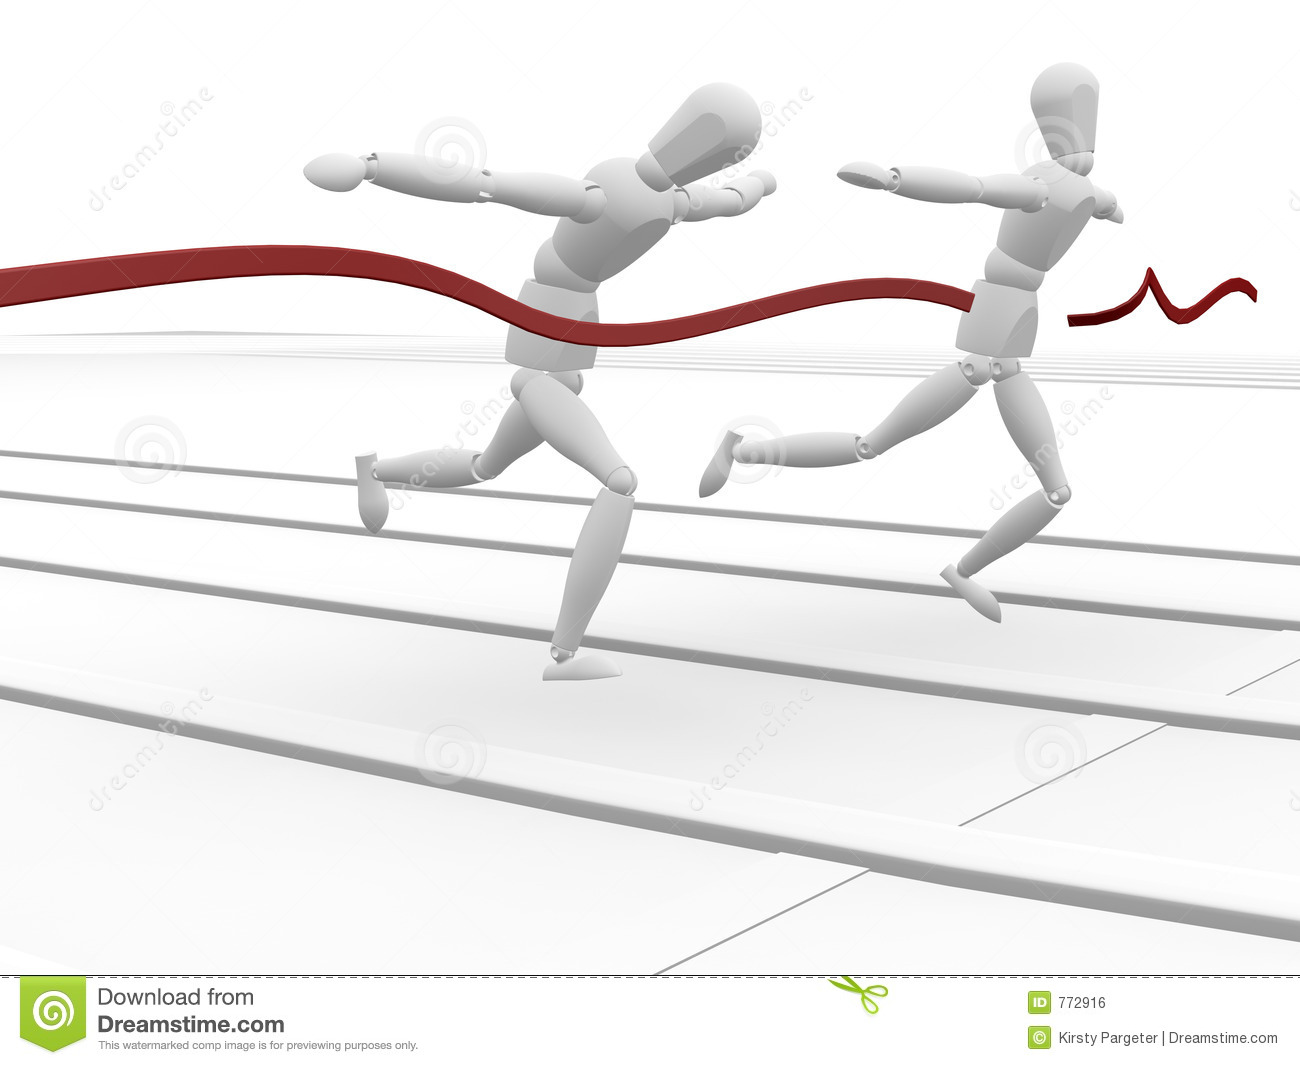 In Line Finishing : Woman finishing through red tape royalty free stock image